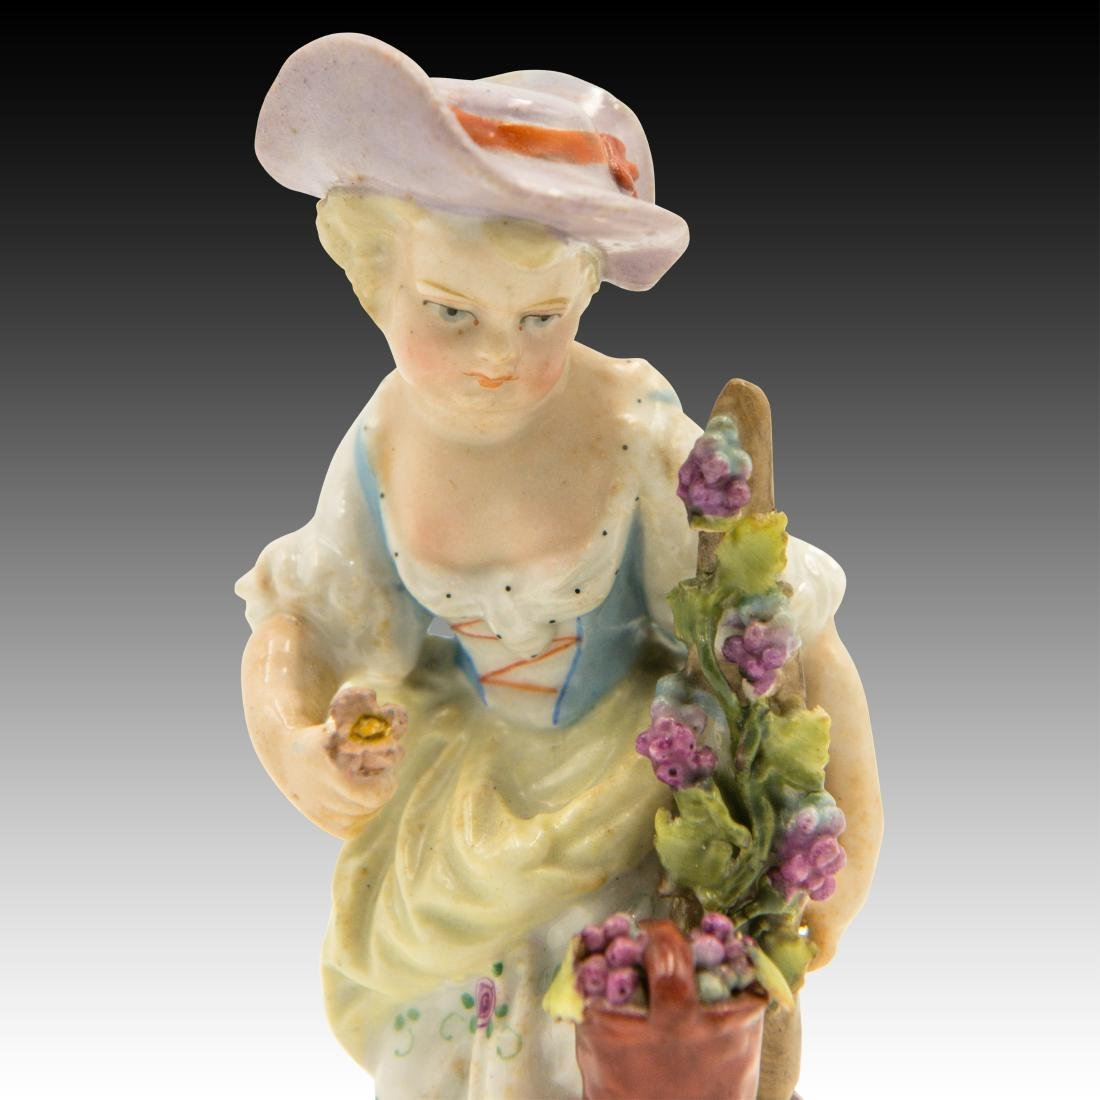 Small Figurine of a Young Girl with Flowers - 5